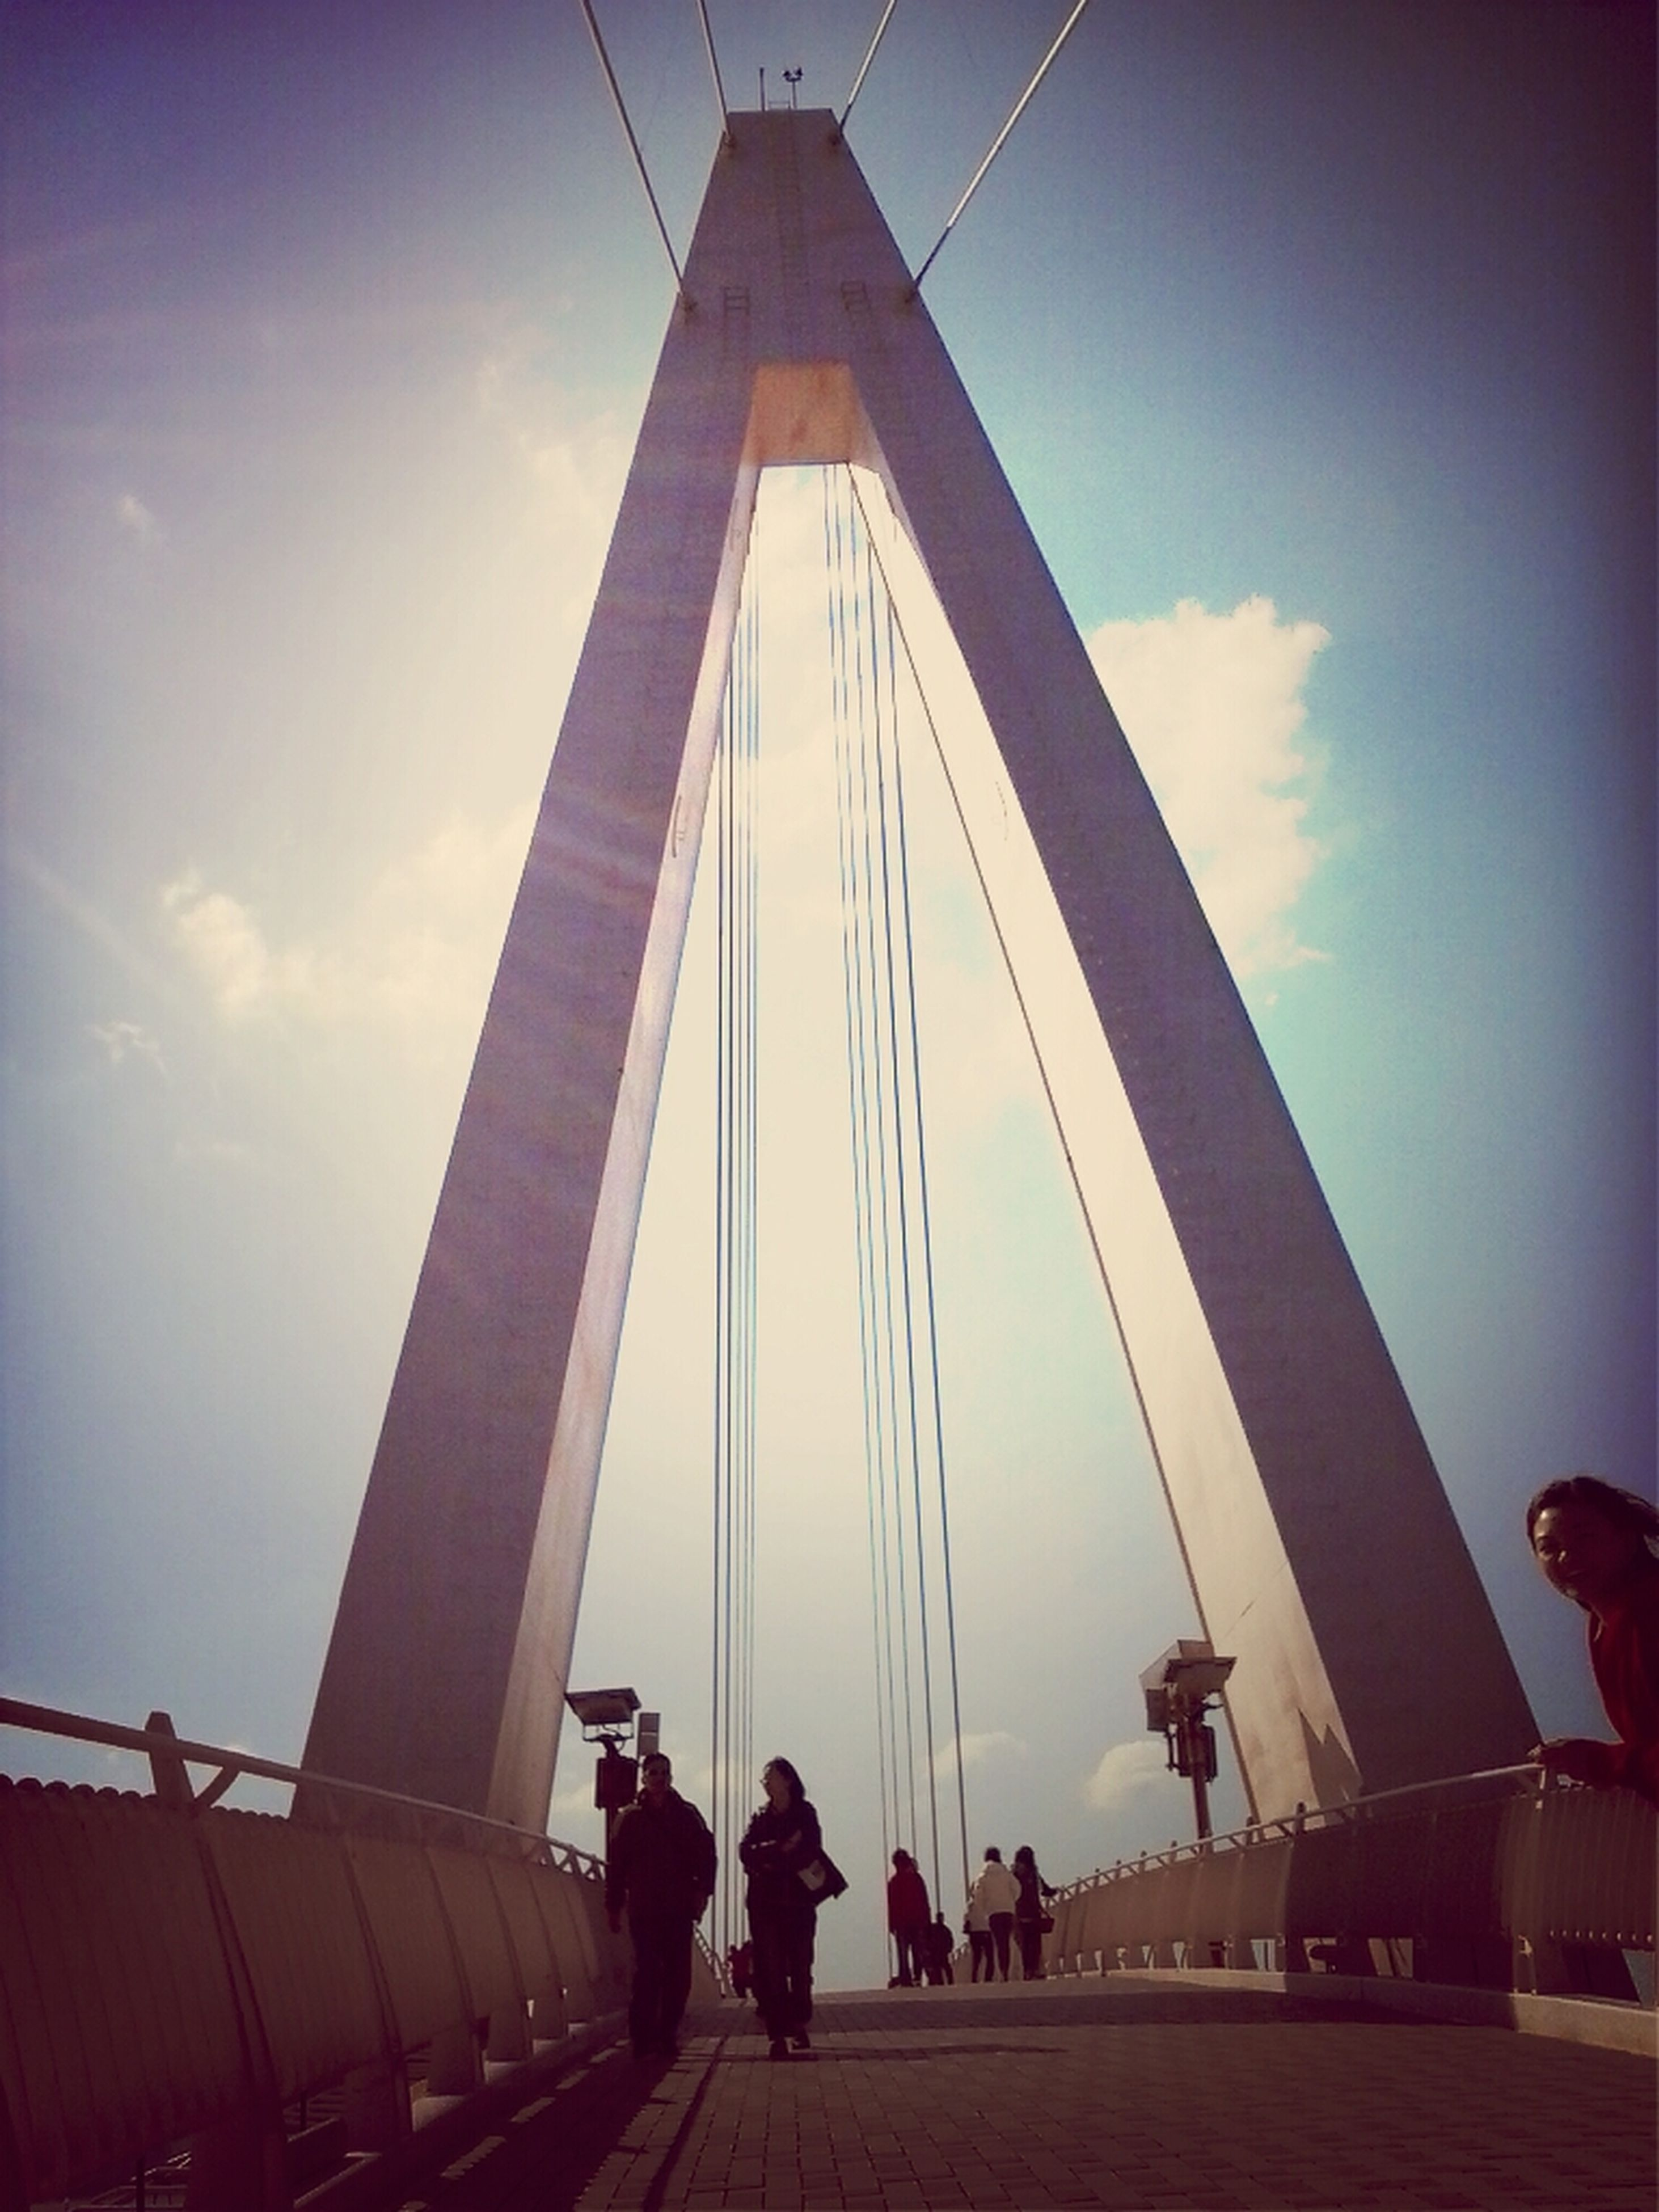 built structure, architecture, low angle view, sky, connection, silhouette, men, bridge - man made structure, engineering, suspension bridge, lifestyles, building exterior, leisure activity, city, travel destinations, cloud - sky, tall - high, modern, person